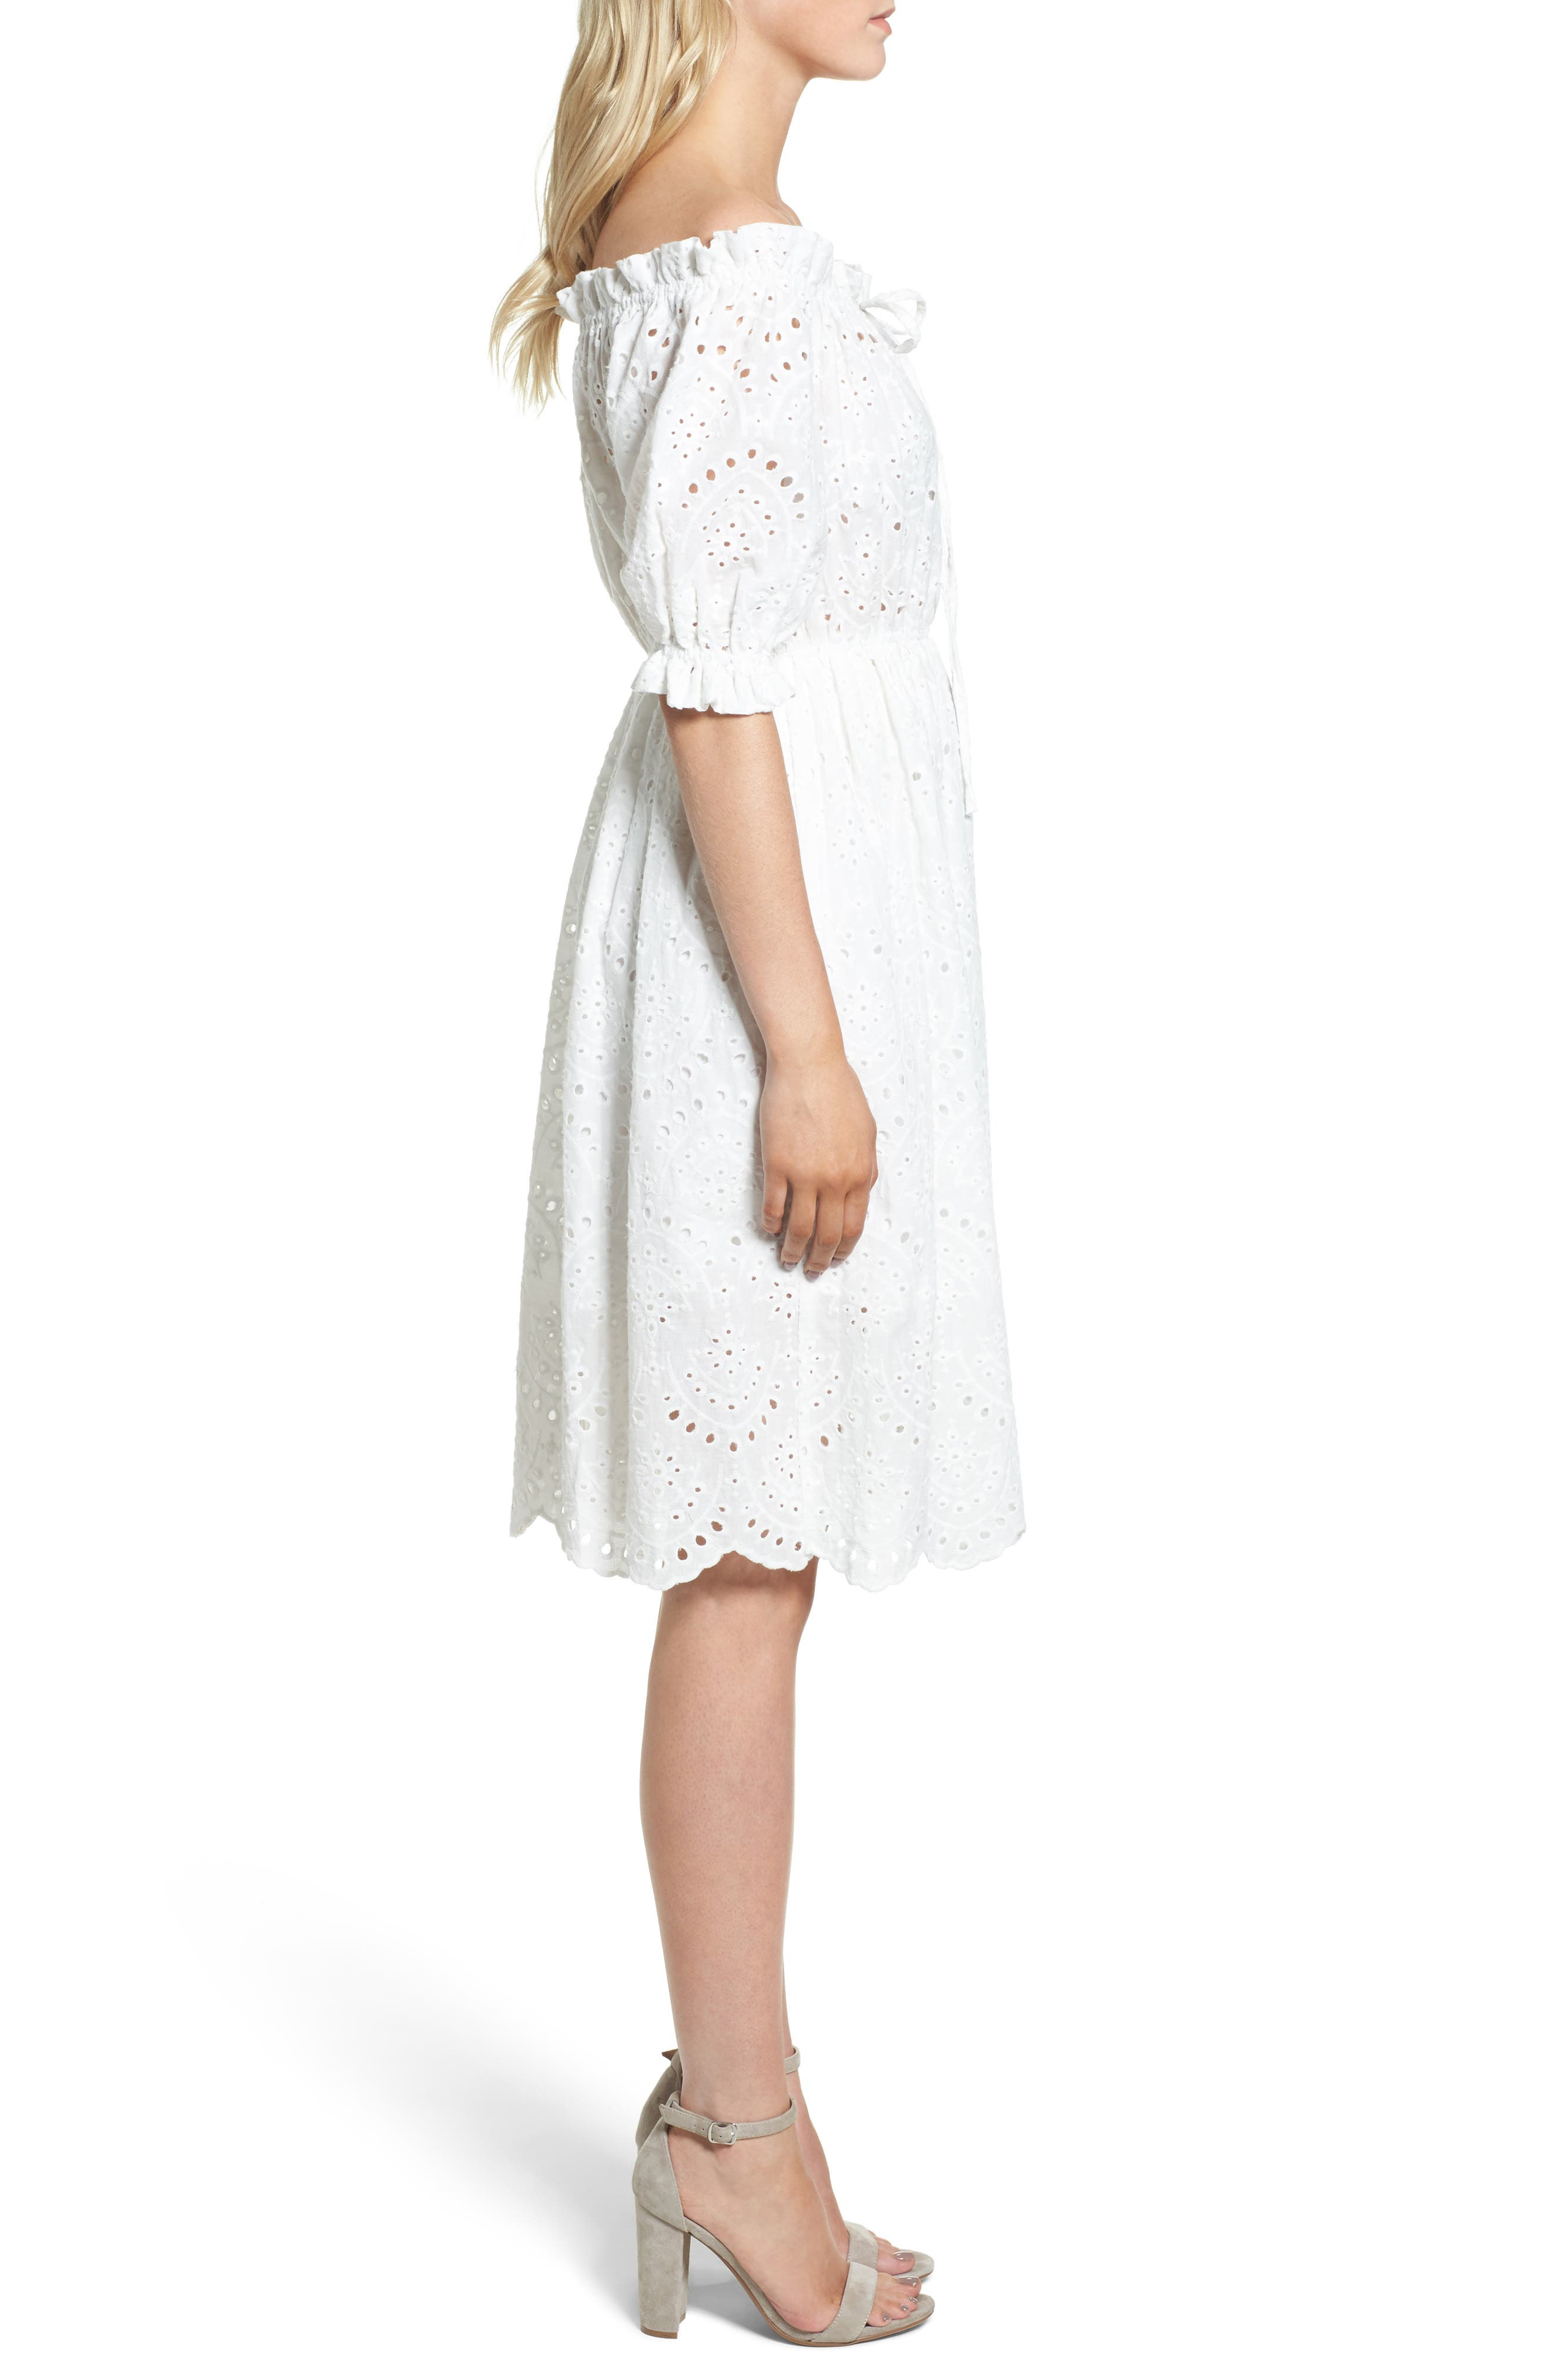 The White Party Off the Shoulder Dress,                             Alternate thumbnail 5, color,                             White